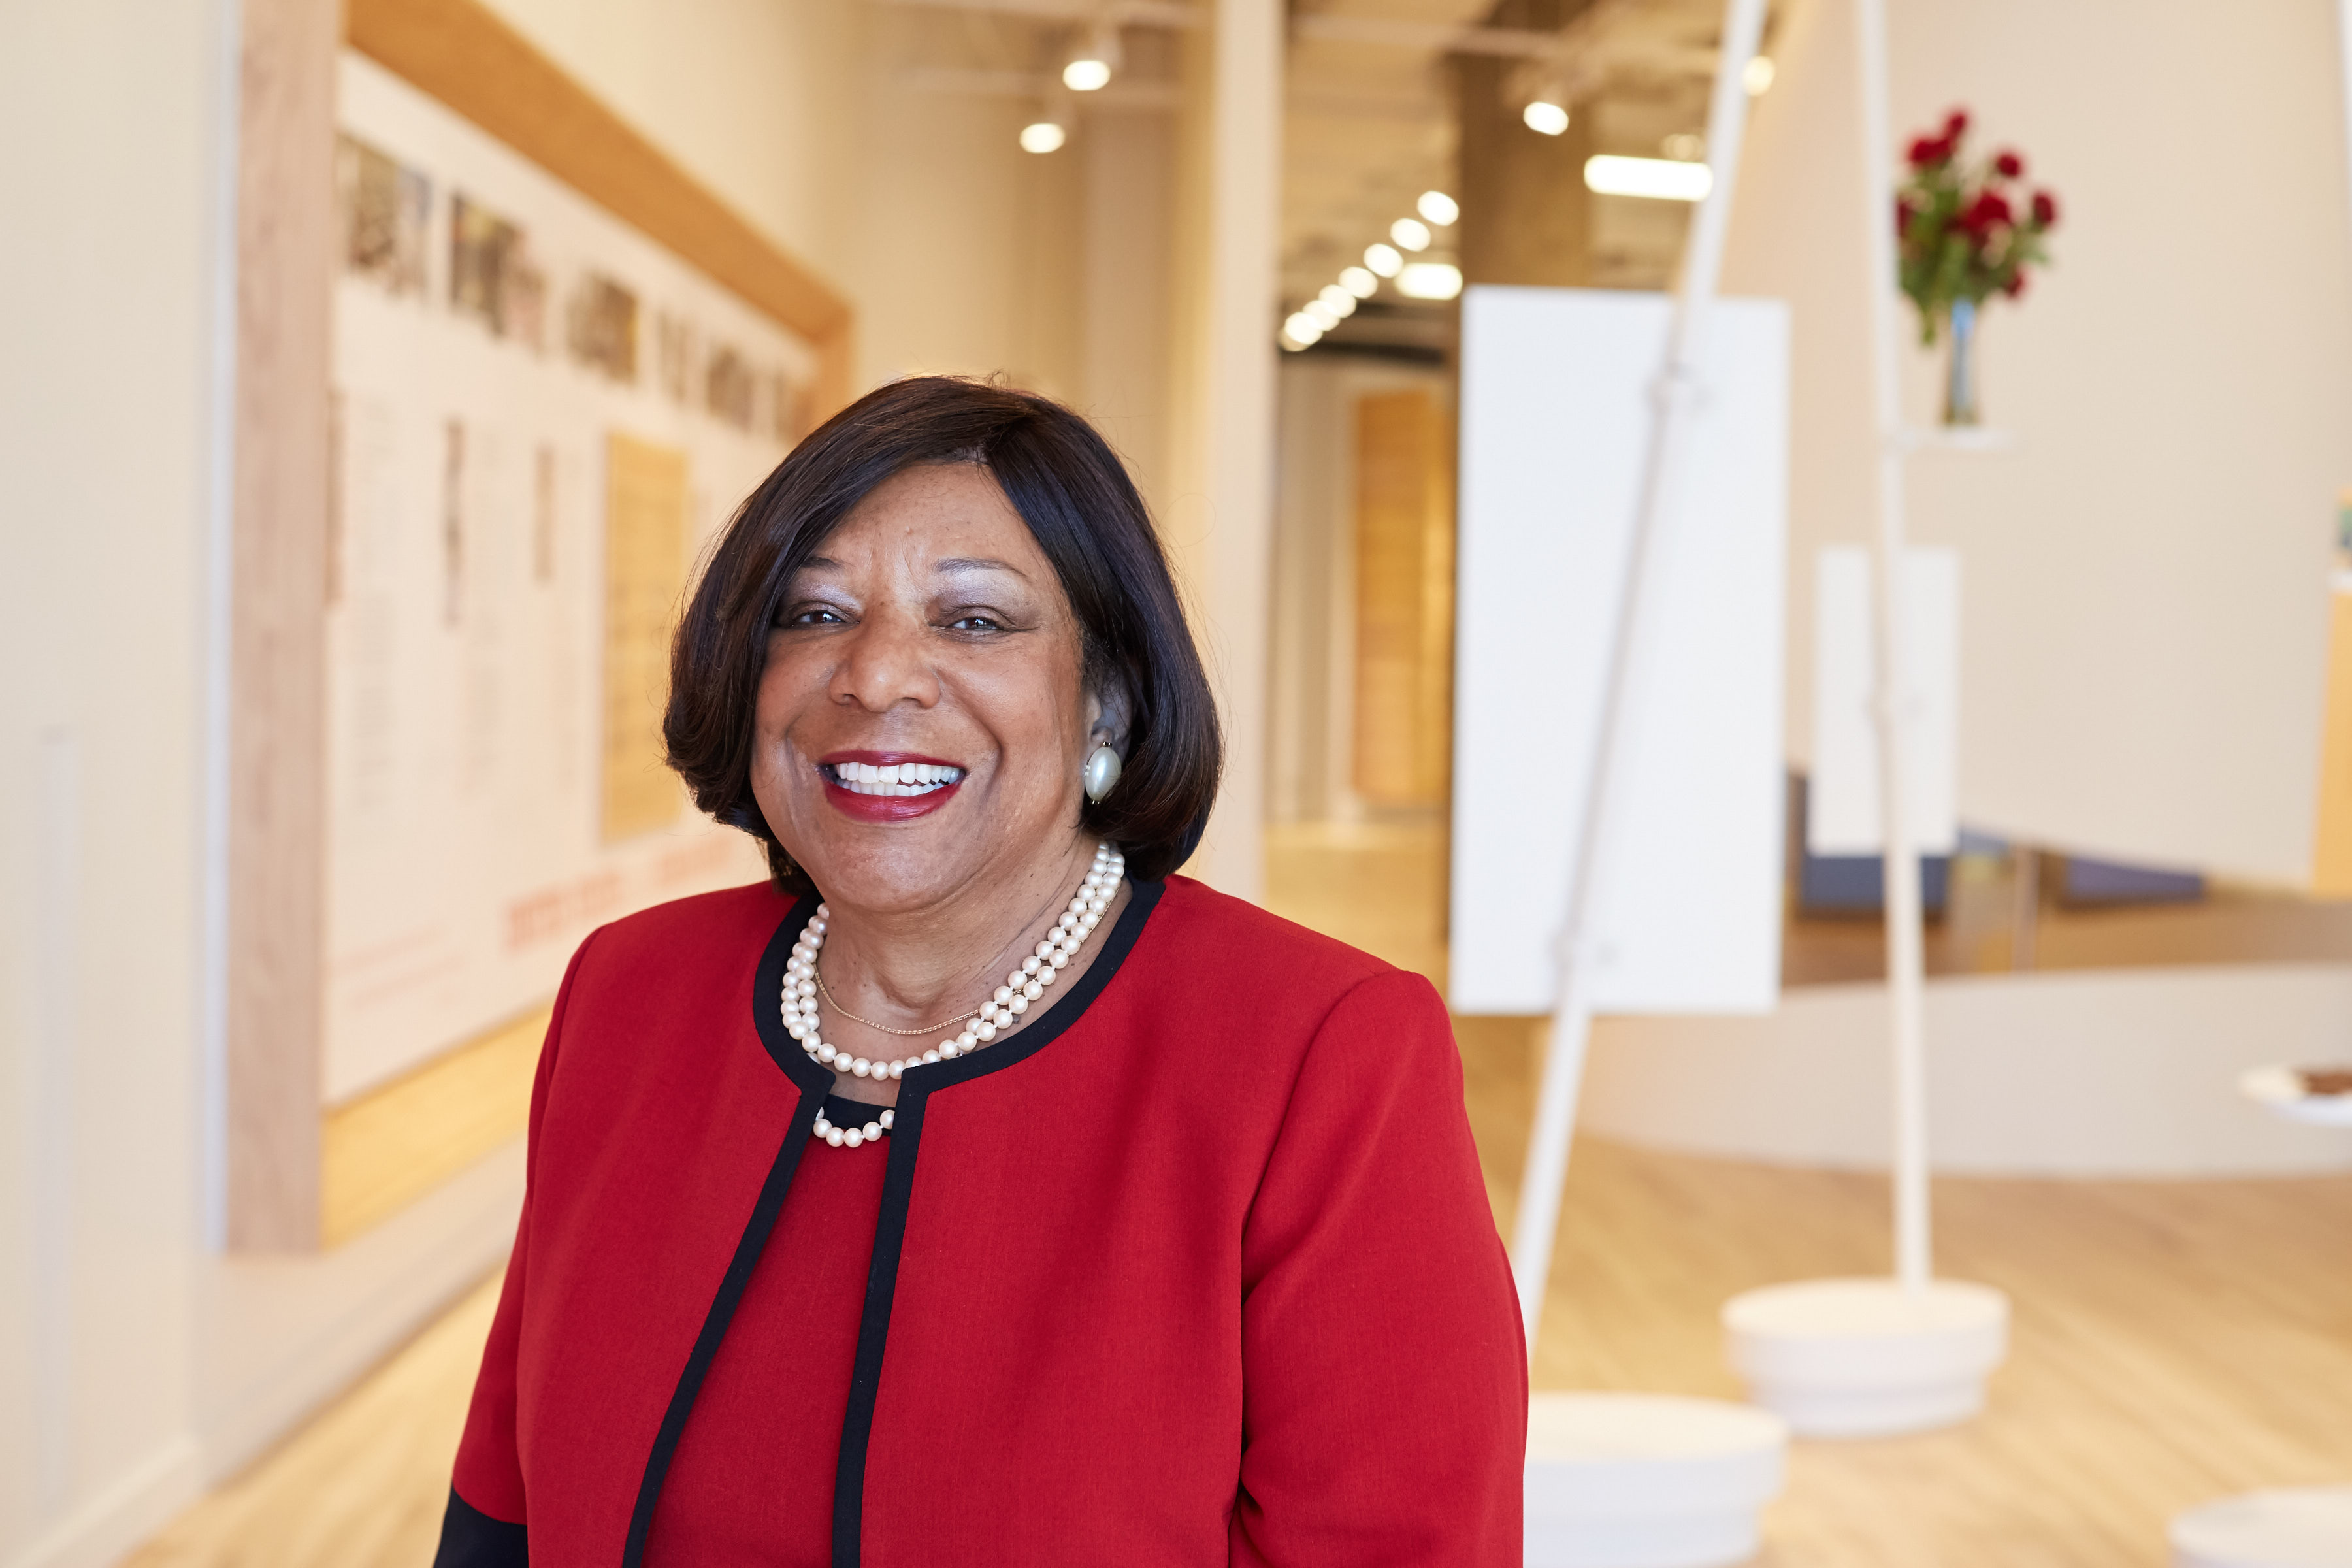 Deborah Richardson, an SMC alumna and senior advisor of partner engagement for the National Center for Civil and Human Rights in Atlanta